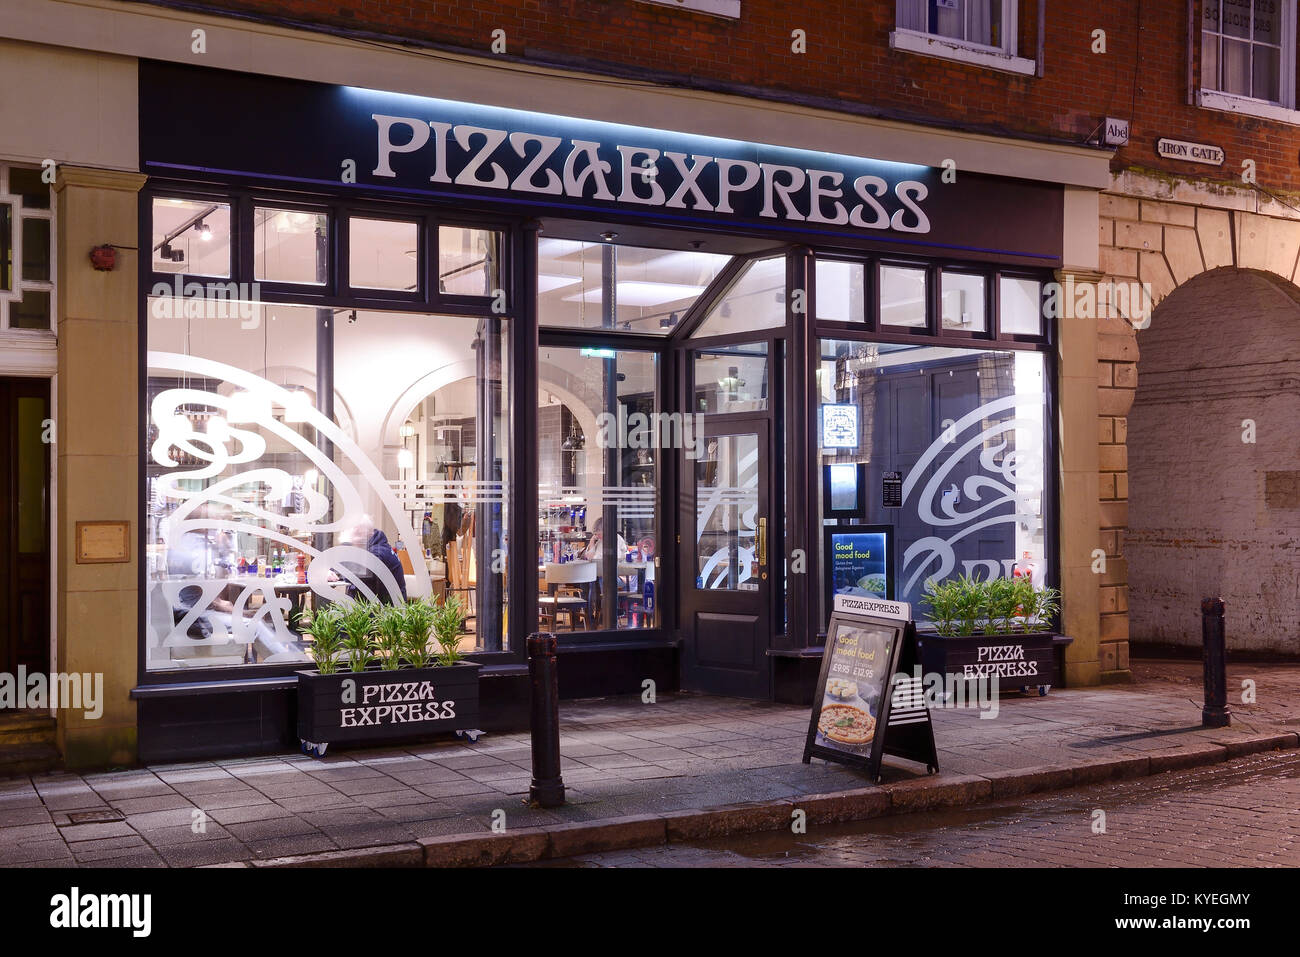 Pizza Express Restaurant In City Stock Photos Pizza